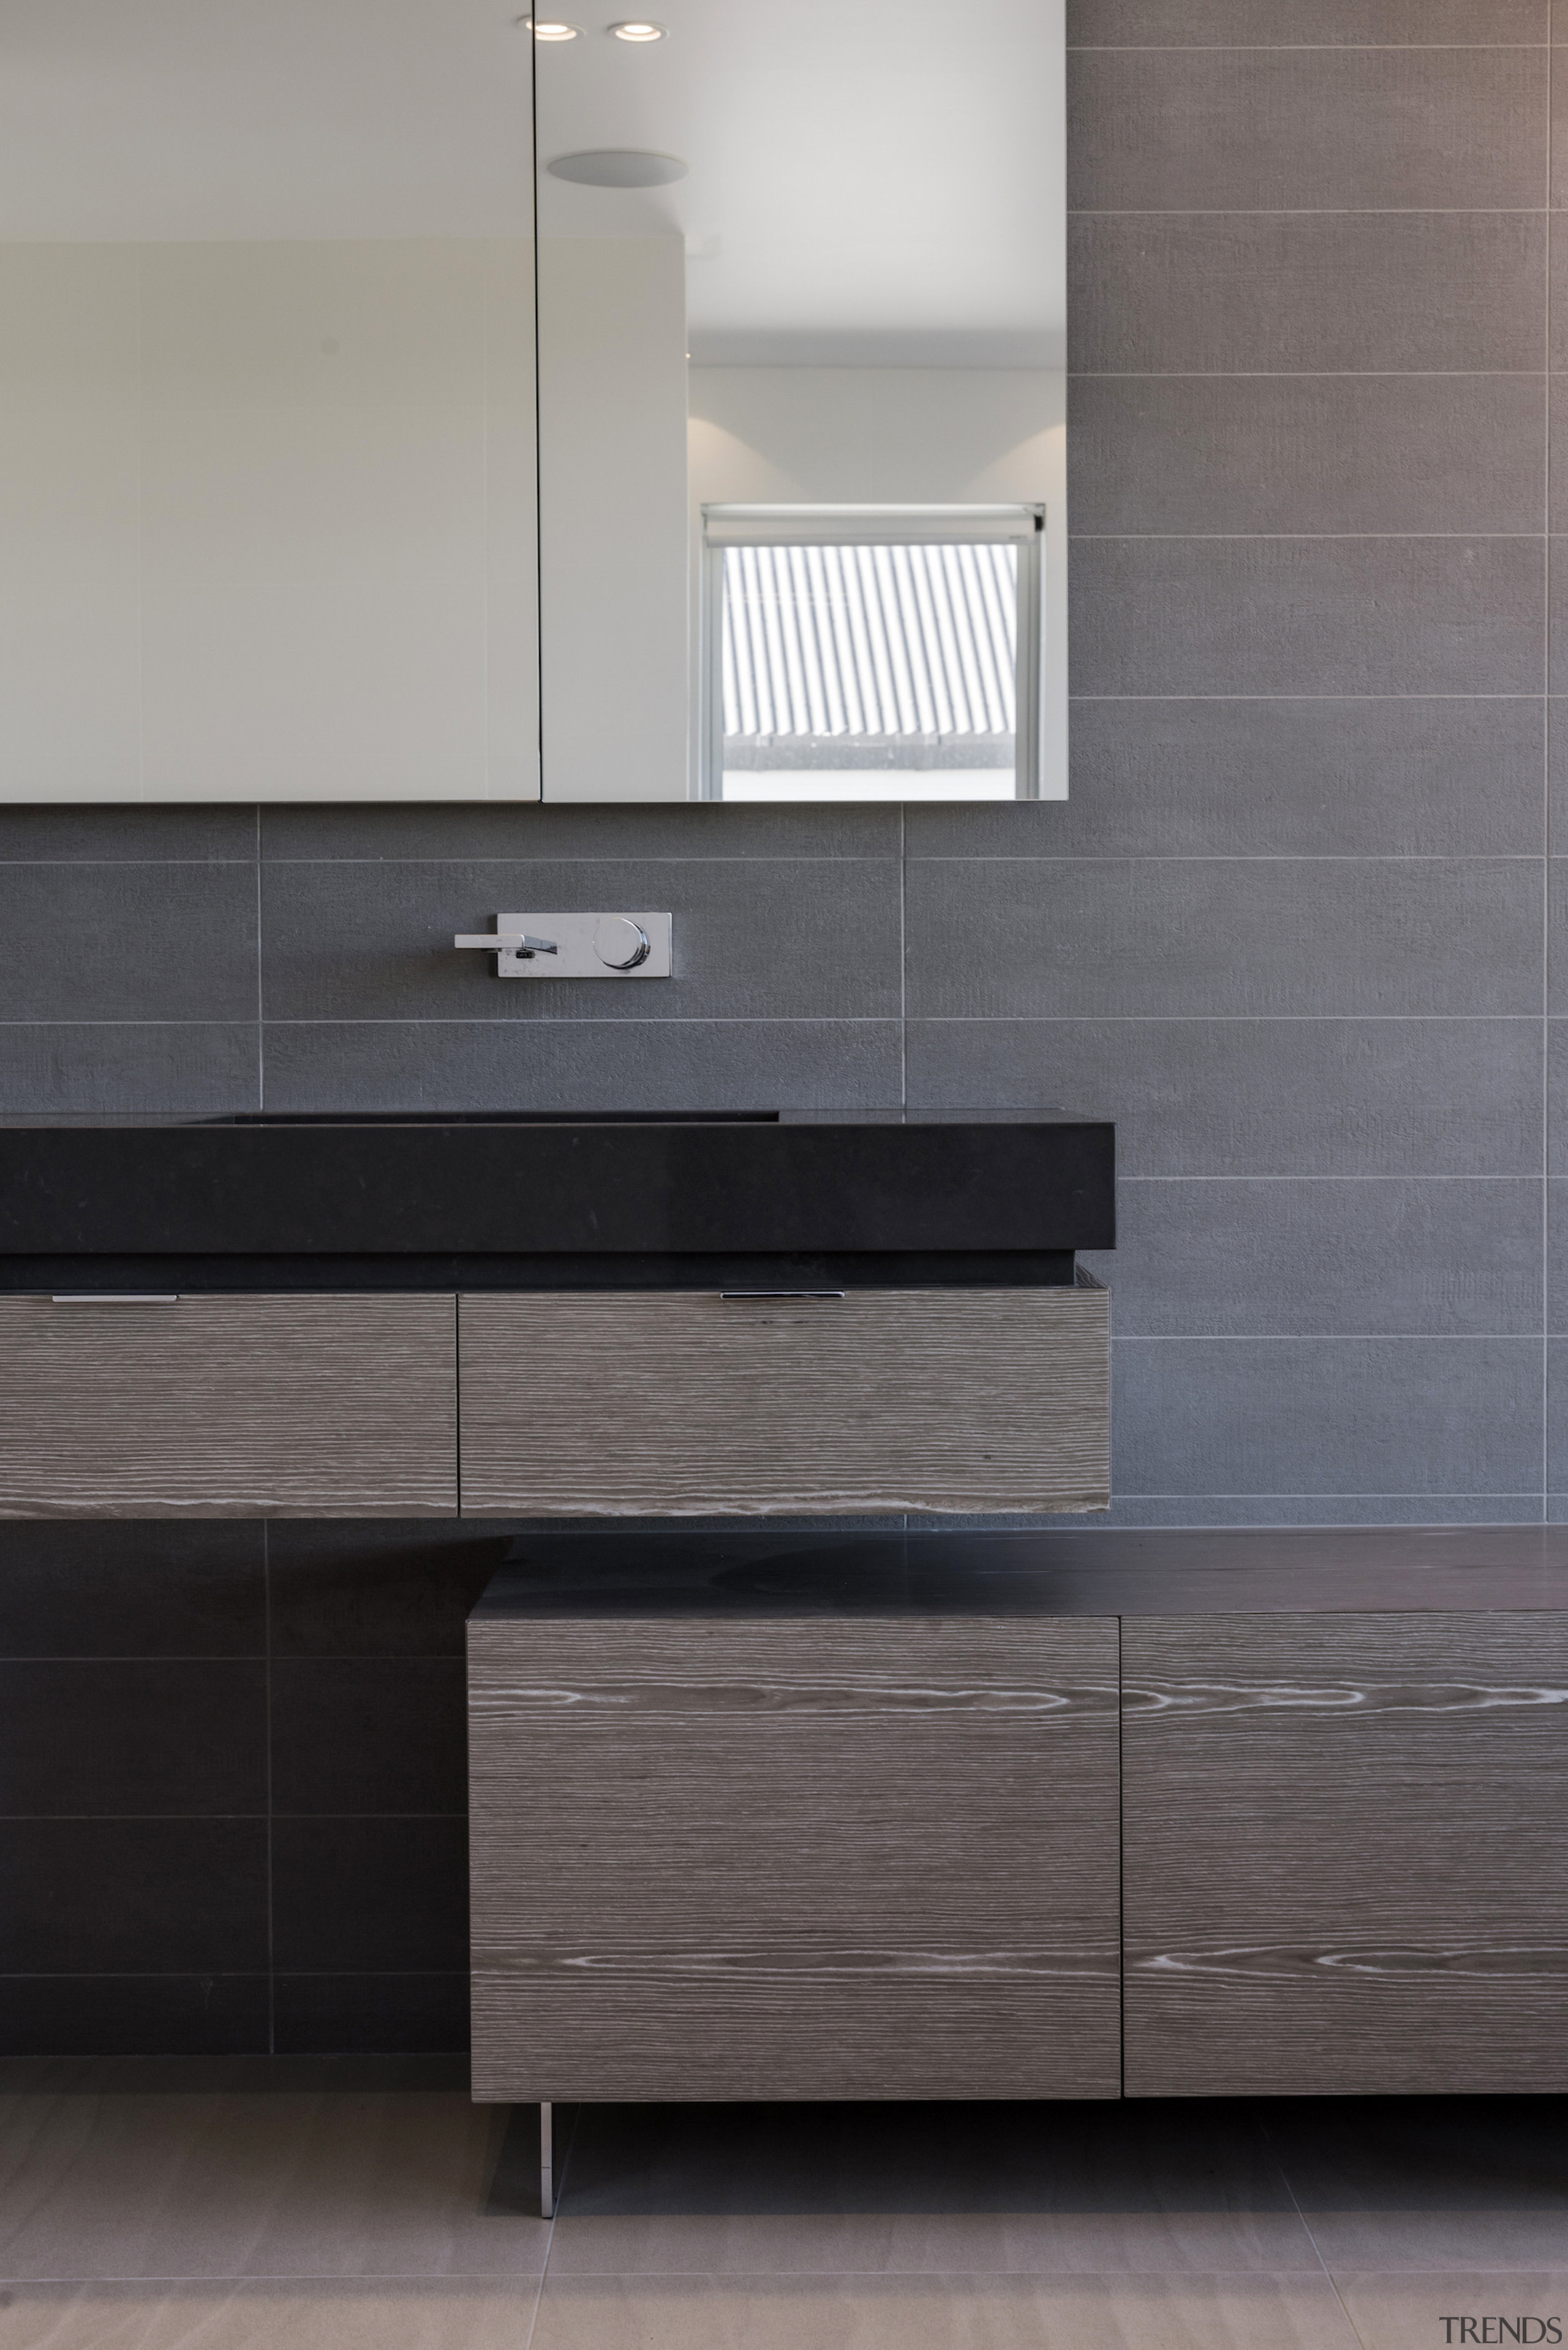 Wood veneer and earthy tiles create an organic angle, bathroom, bathroom accessory, bathroom cabinet, cabinetry, chest of drawers, drawer, floor, flooring, furniture, hardwood, interior design, kitchen, product, sink, tap, tile, wall, wood, wood flooring, wood stain, gray, black